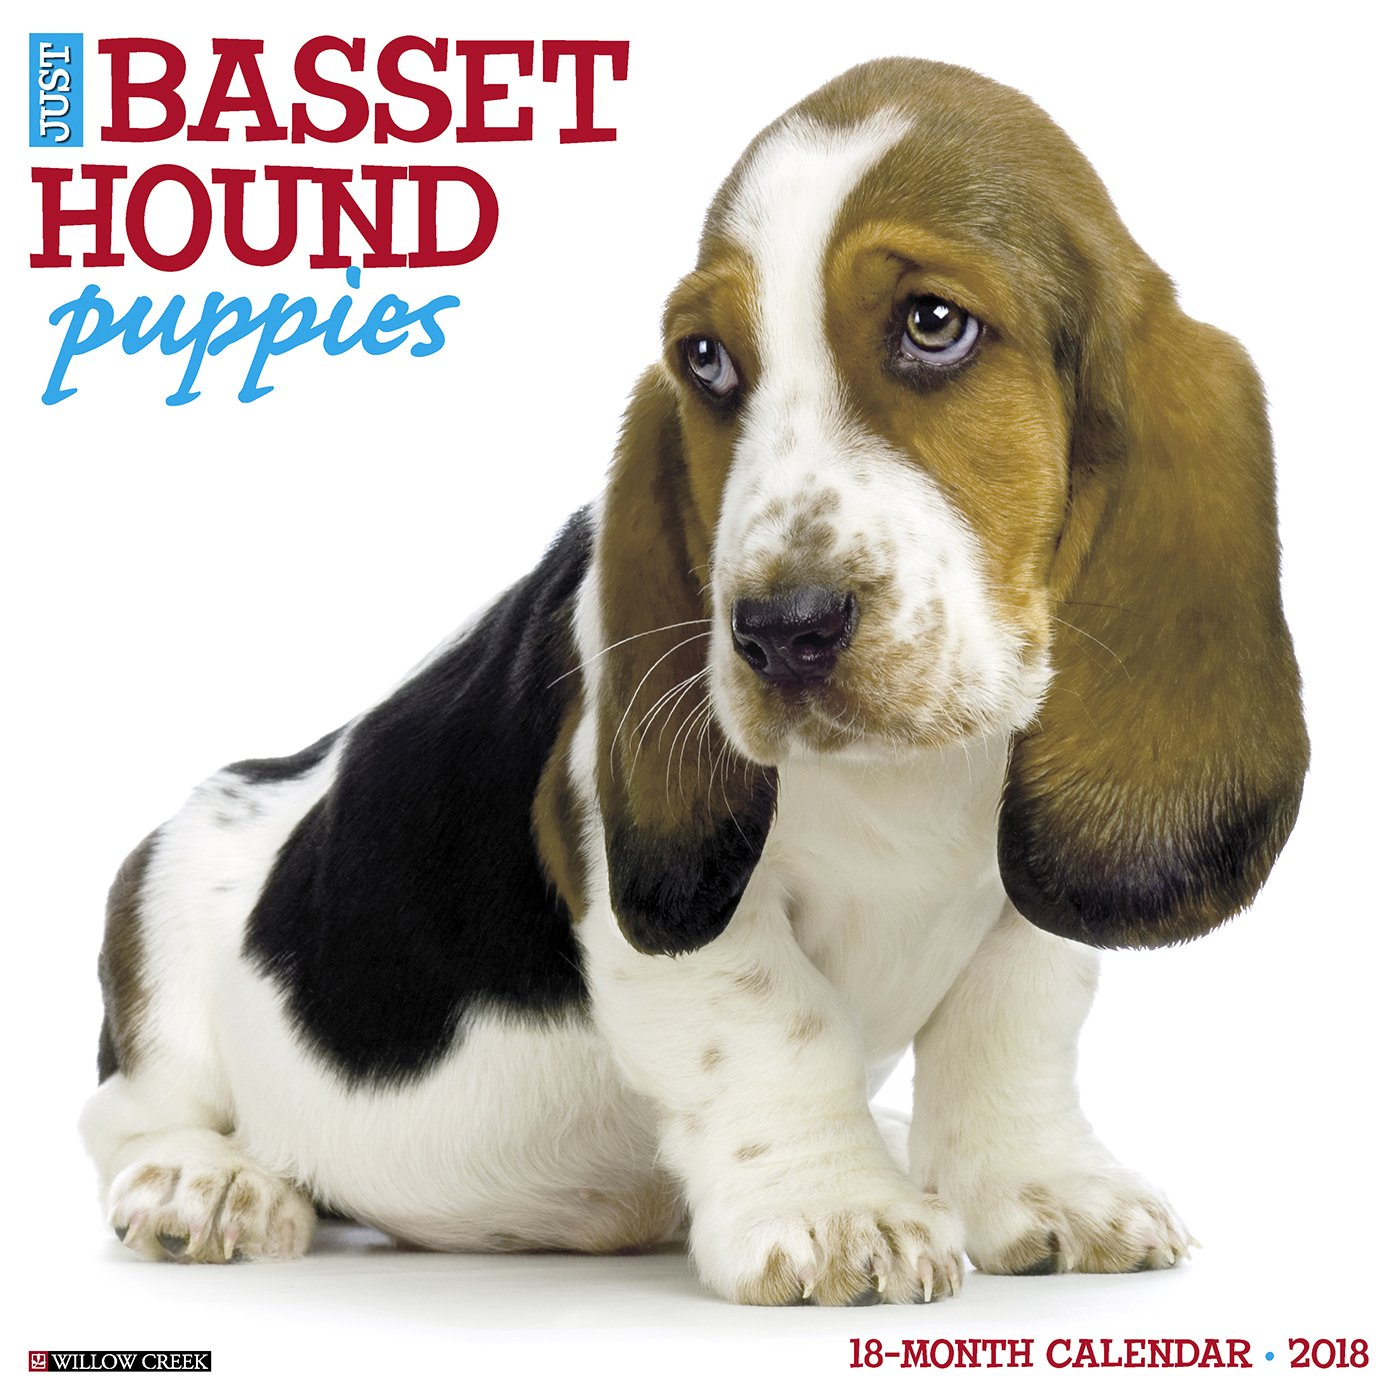 Just Basset Hound Puppies 2018 Wall Calendar (Dog Breed Calendar ...